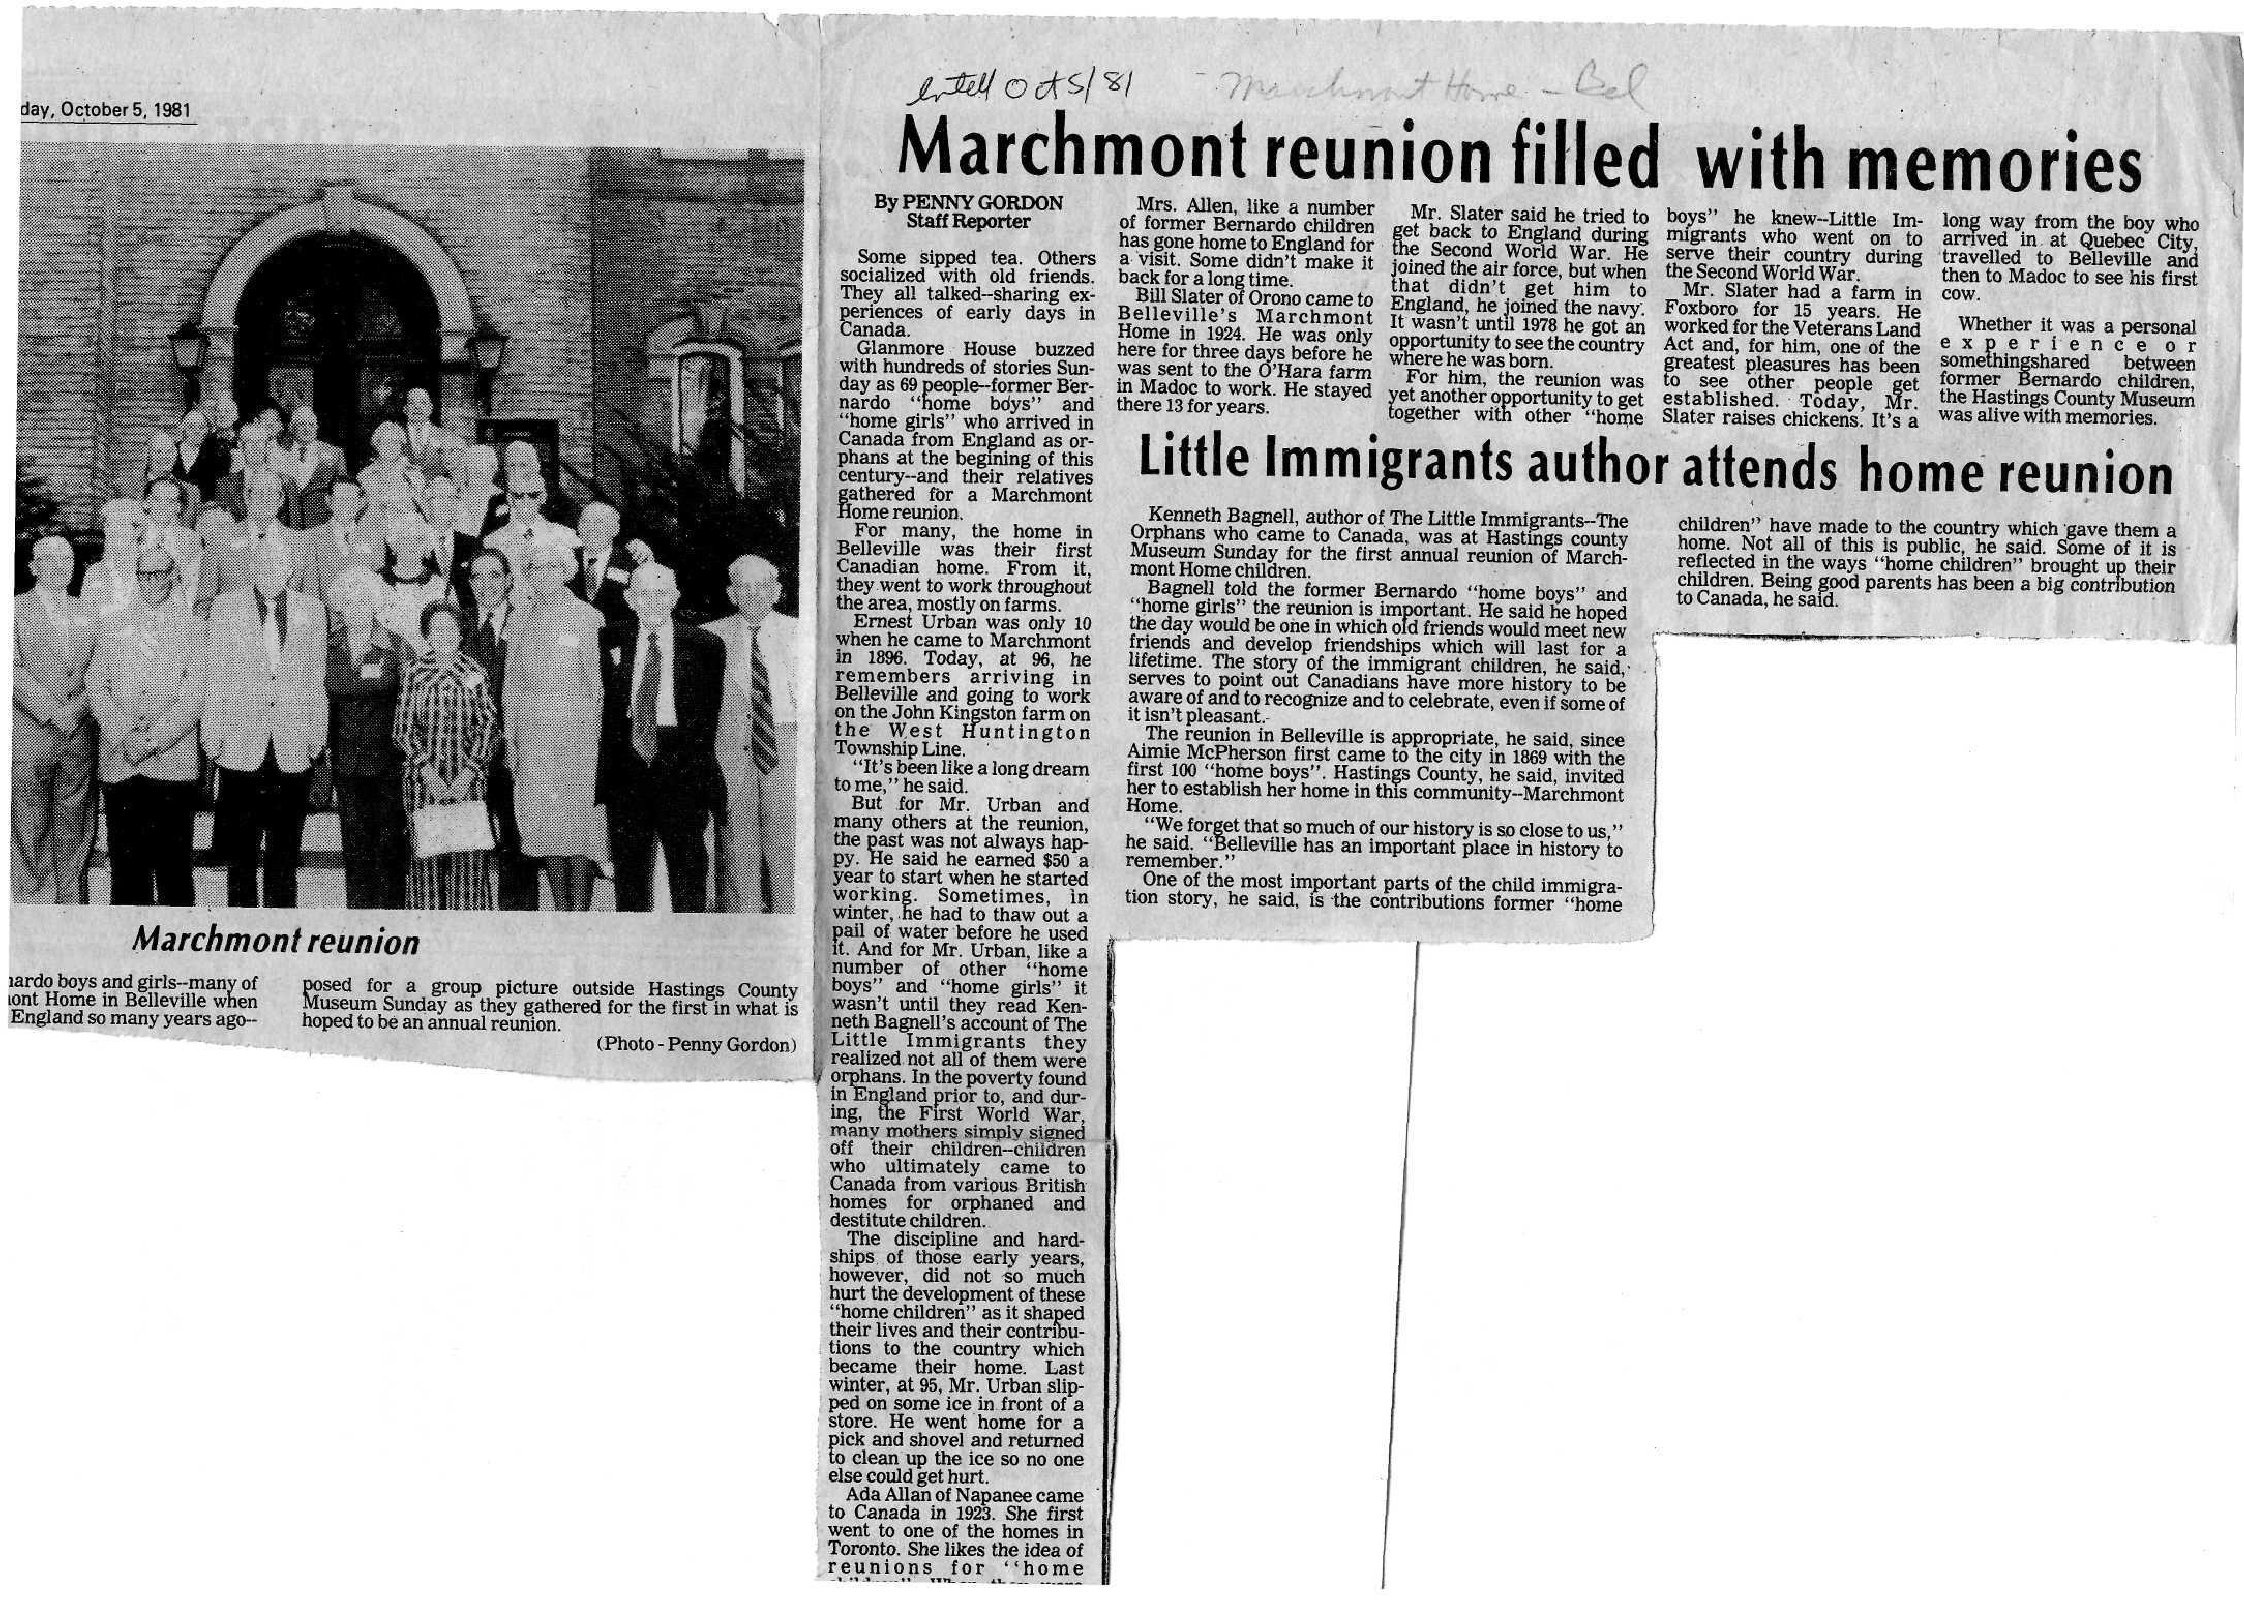 Marchmont reunion filled with memories - Little Immigrants author attends home reuntion